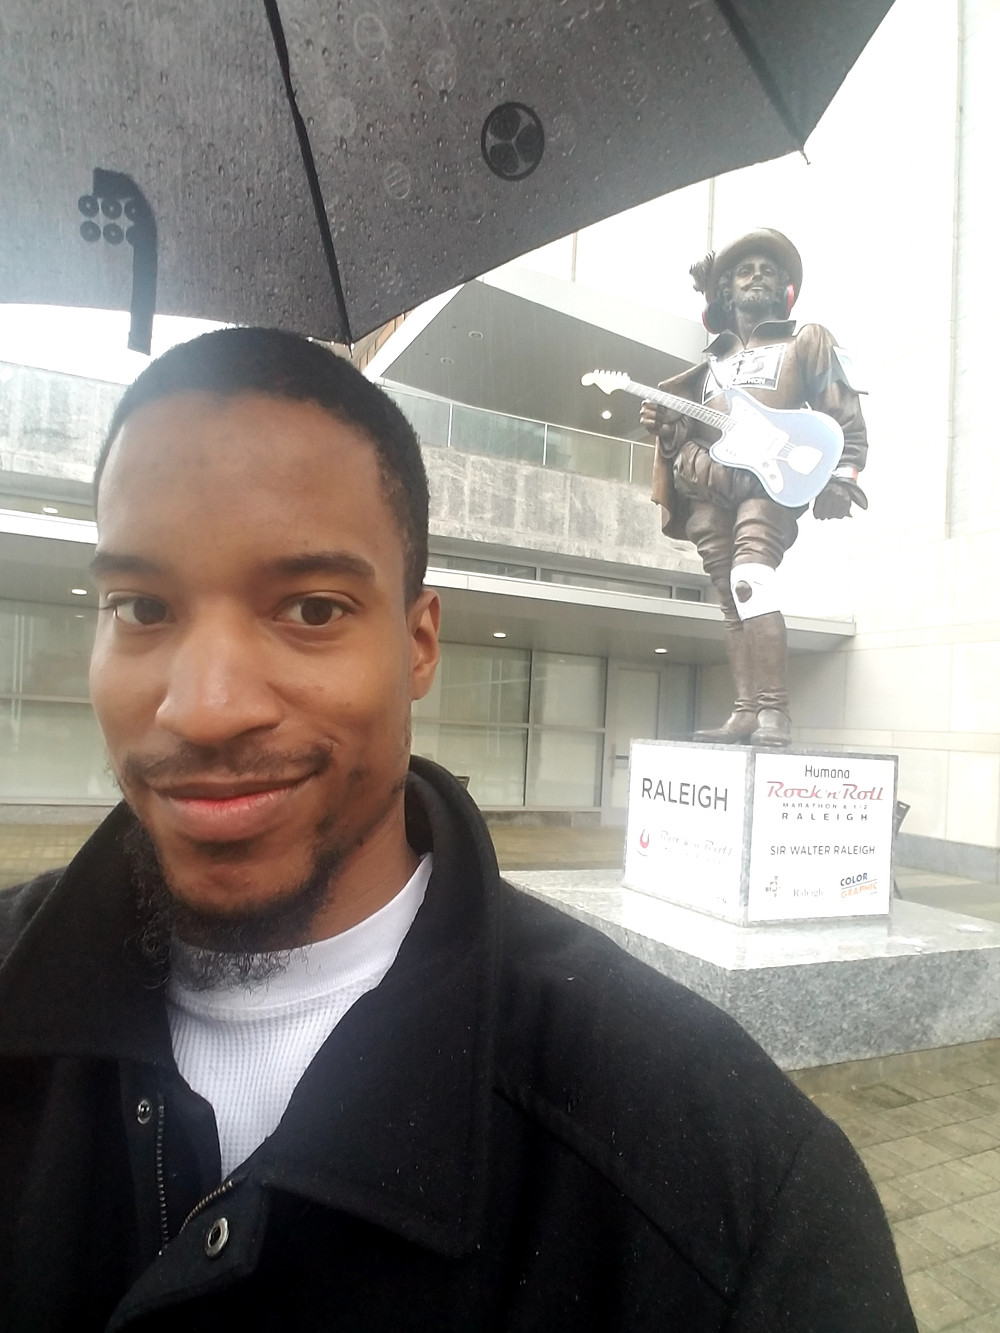 Darkfox Photography standing under an umbrella in front of a statue of a rock and roll marathoner in Raleigh, North Carolina